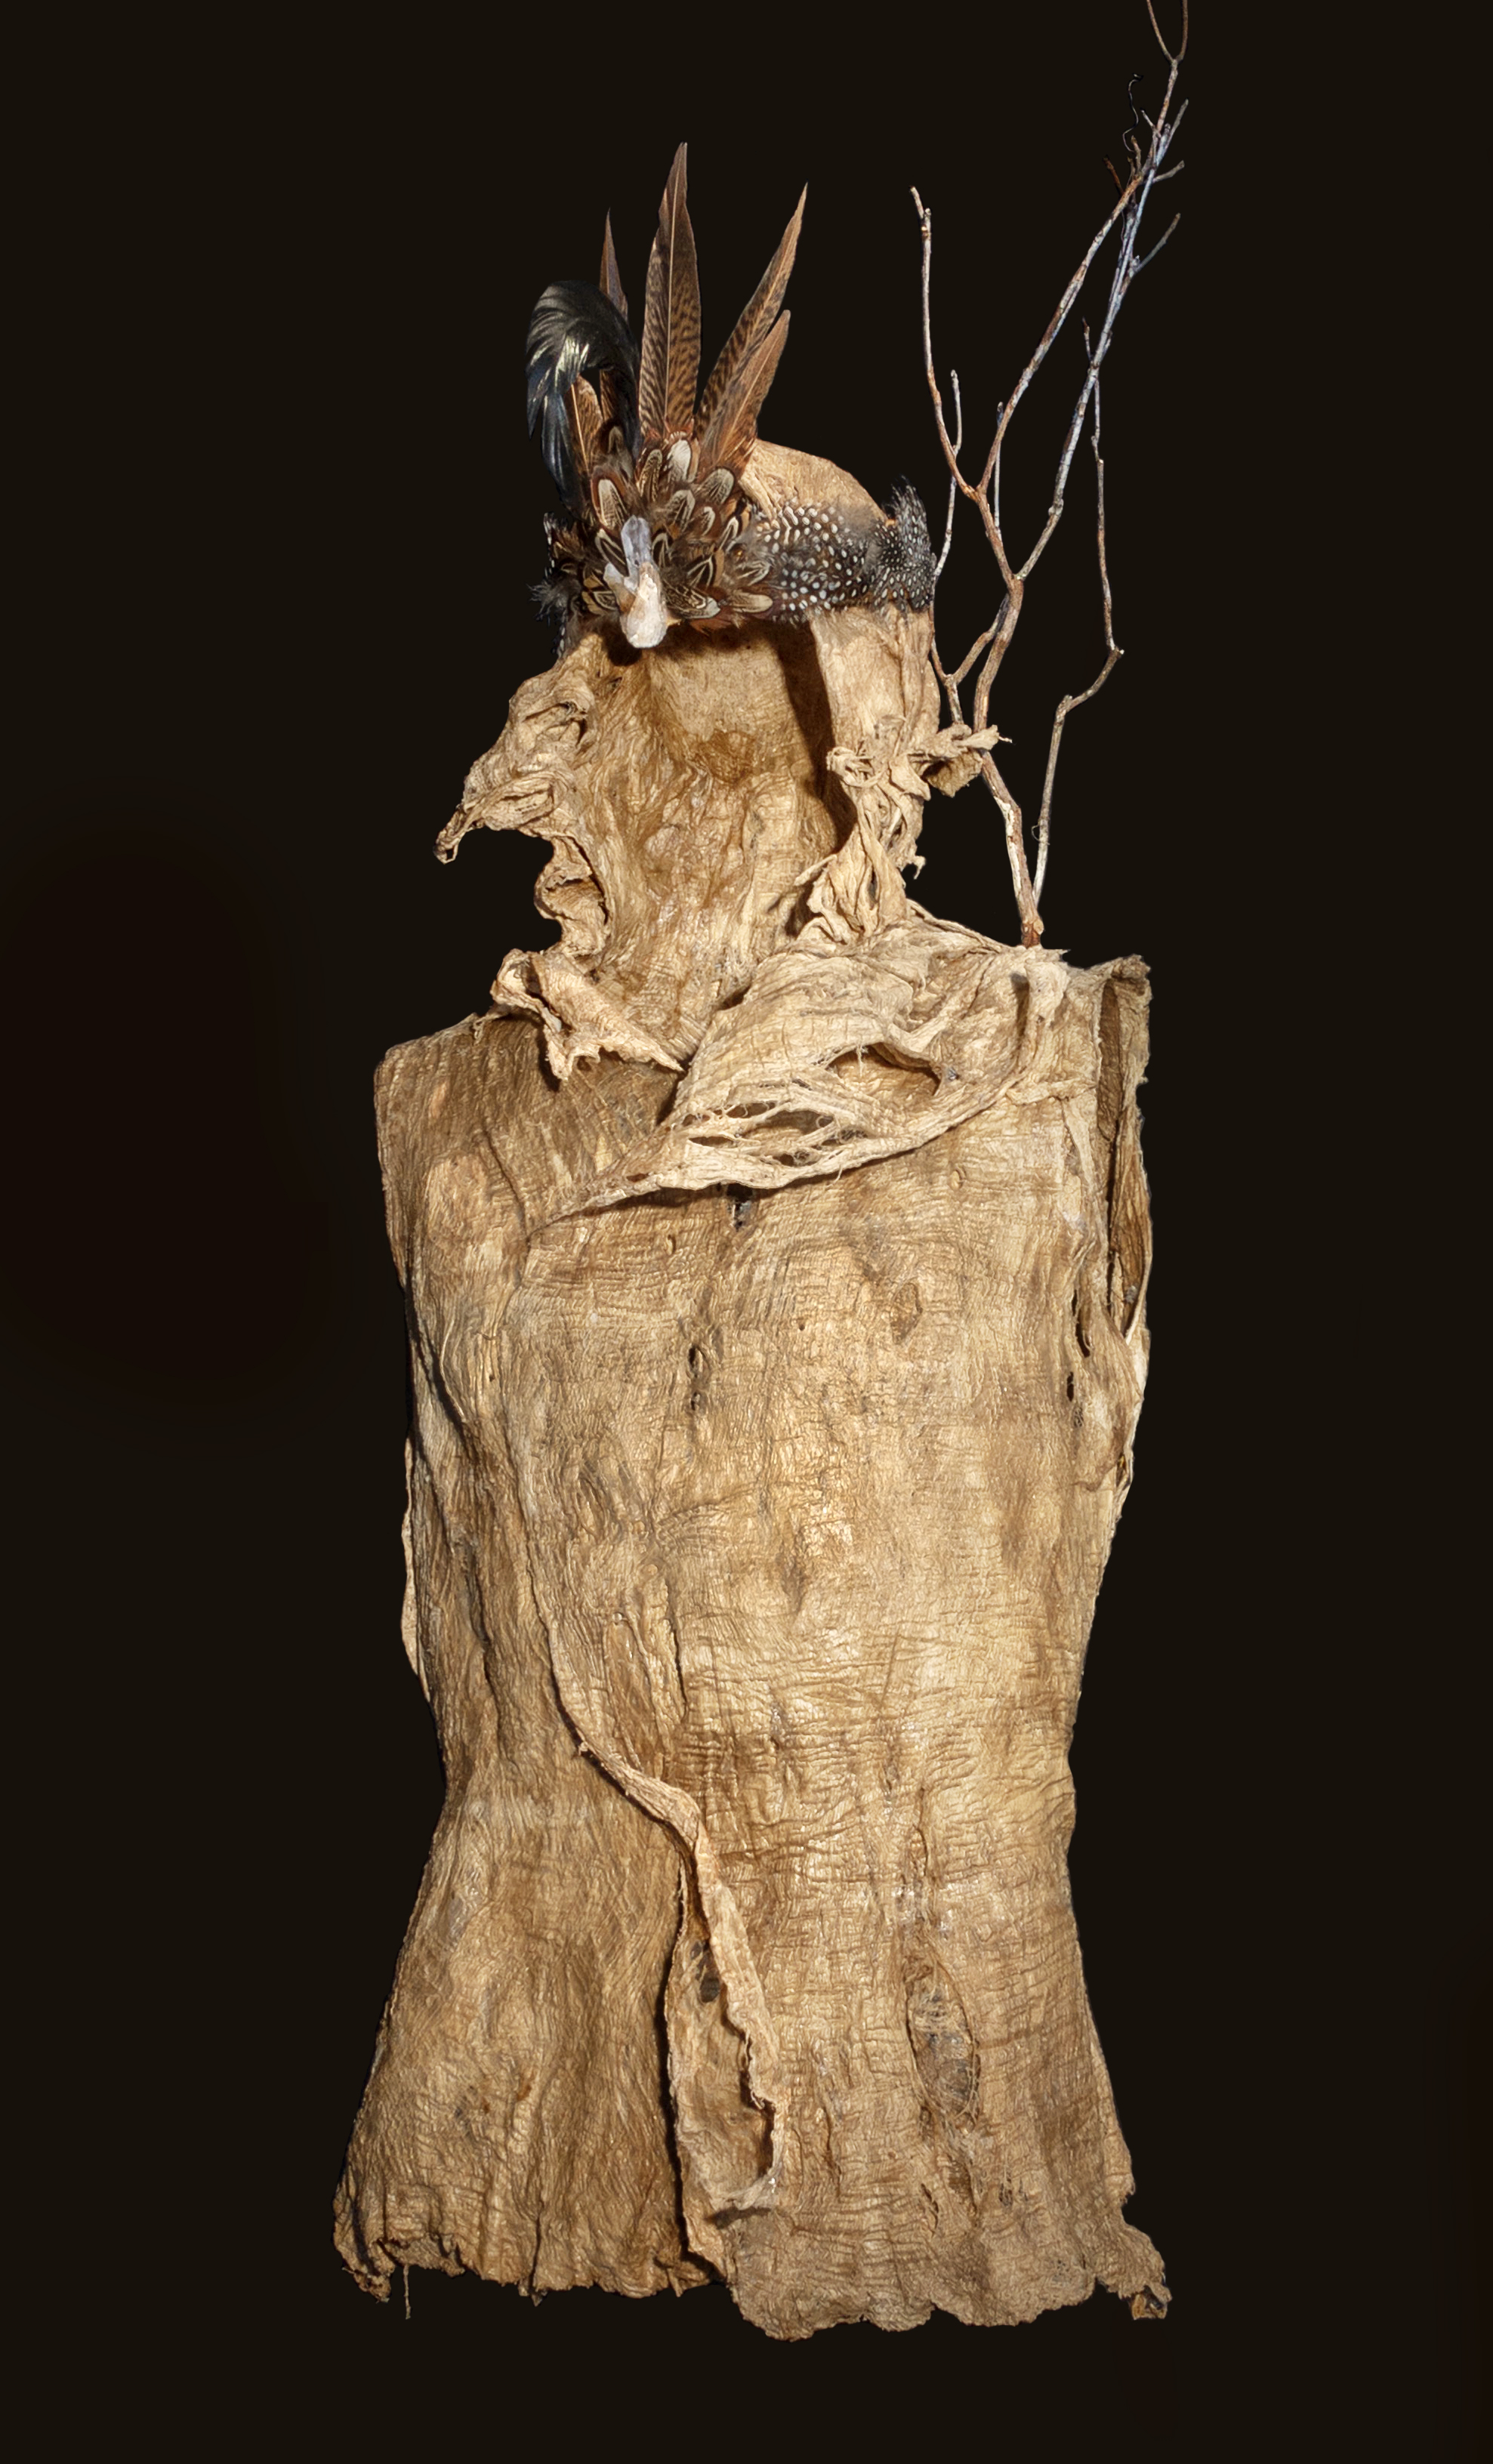 """SOCIAL WARRIORS: Call To Arms. """"FEARLESS"""",  2018, CAMBIUM FIBER FROM ASIAN MULBERRY TREE, QUAIL FEATHERS AND BRANCH, 43""""H x 17""""W x 15""""D, $2900"""